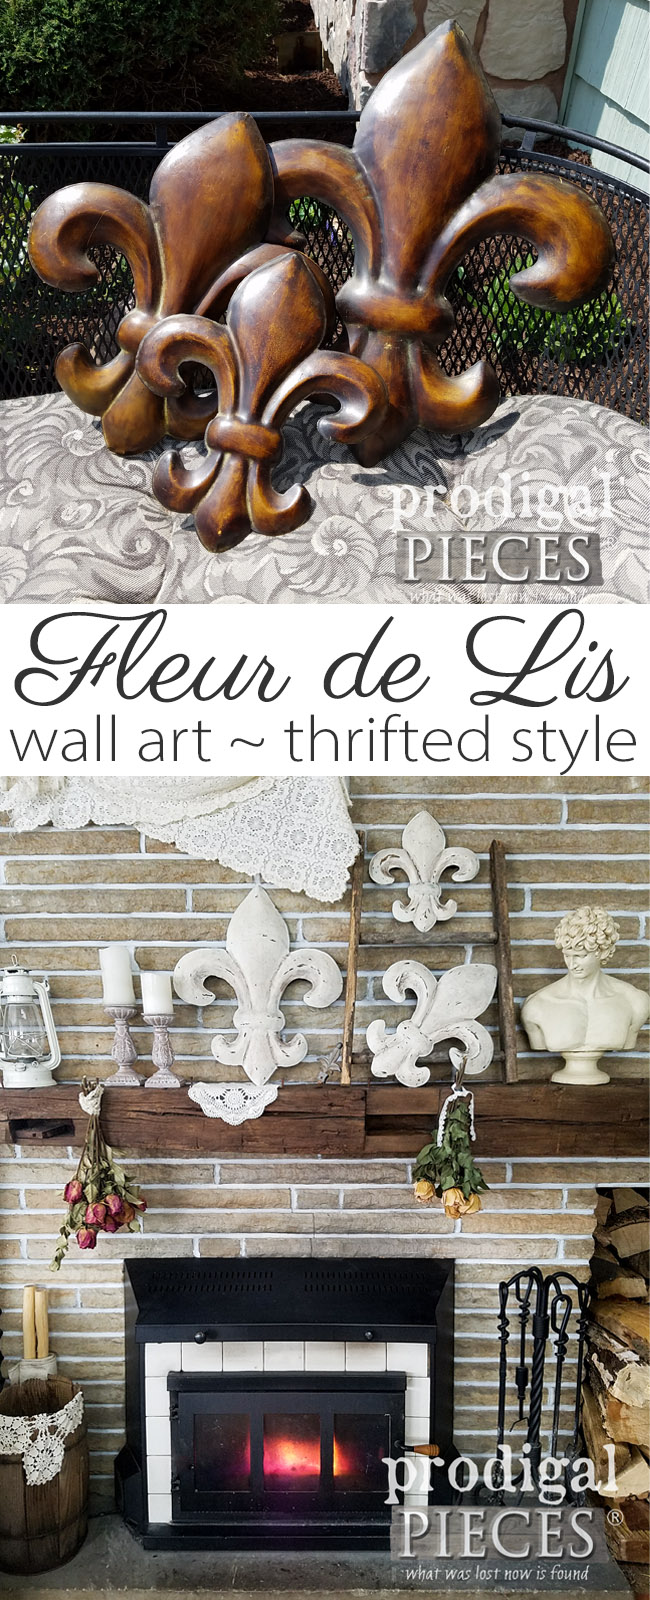 Who knew a thrifted set of Fleur de Lis wall art could look so good?! Get all the DIY details at Prodigal Pieces | prodigalpieces.com